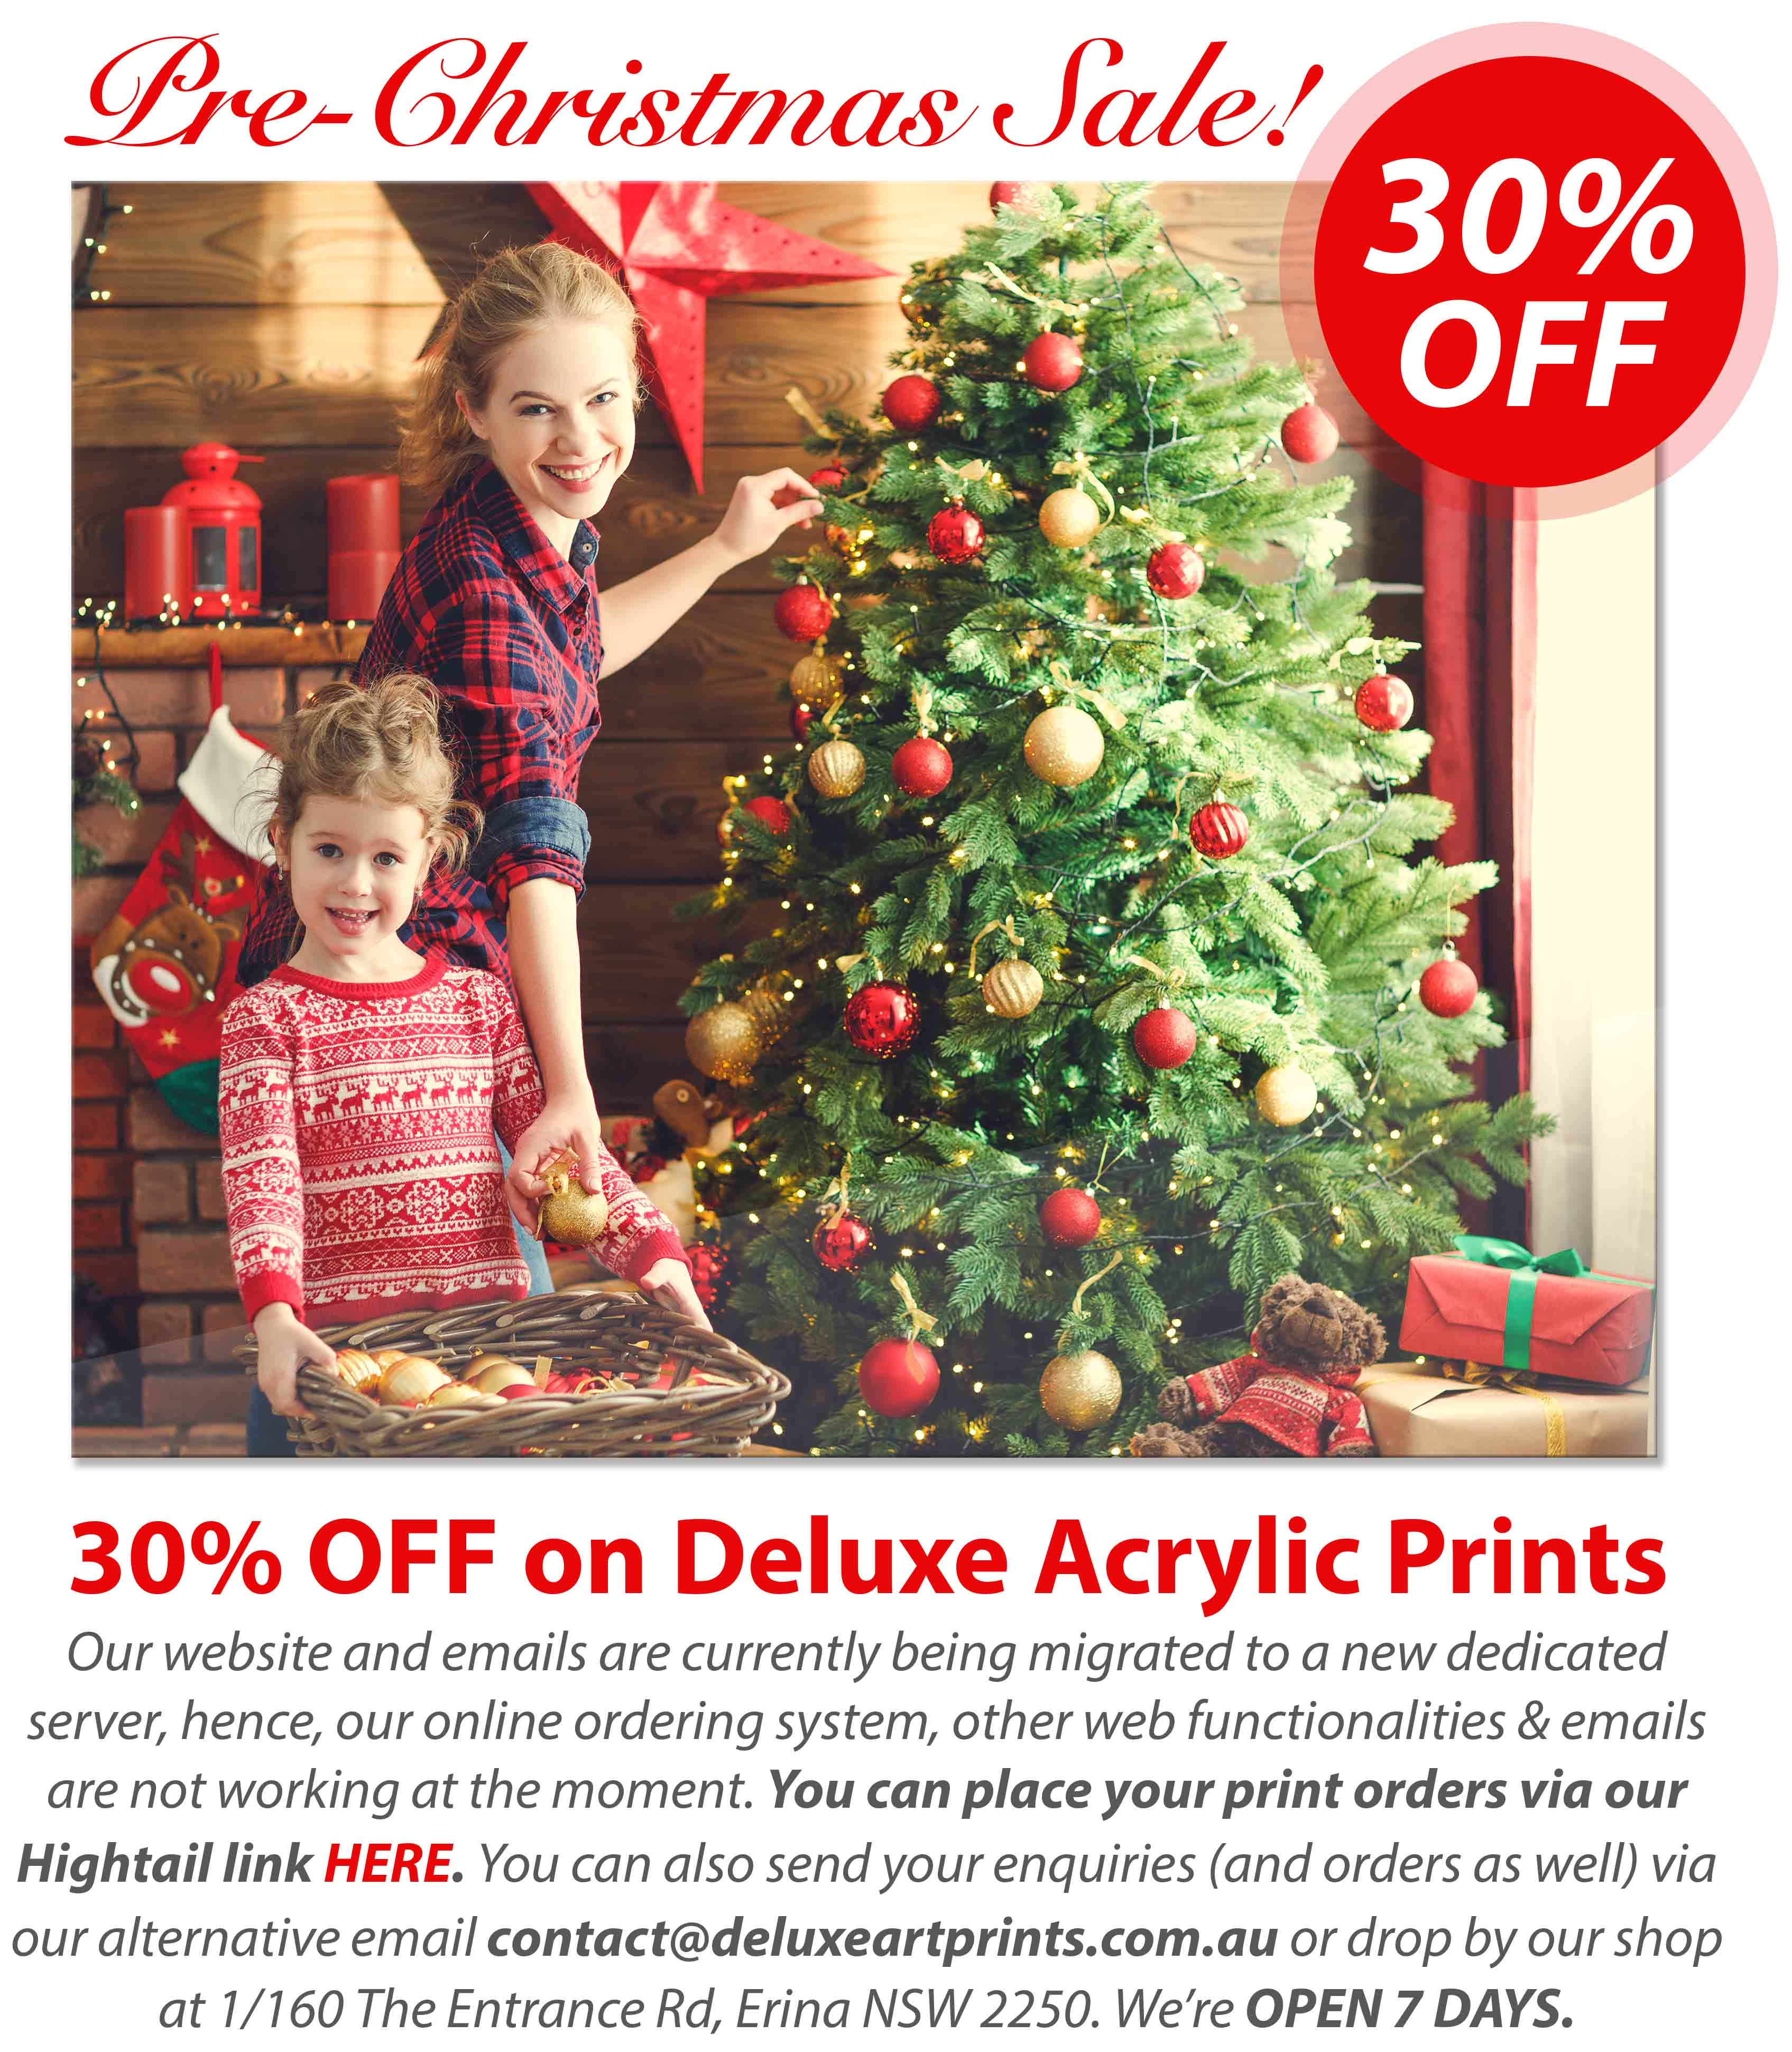 Deluxe Art CHRISTMAS SALE Acrylic Print Nov19 with notes